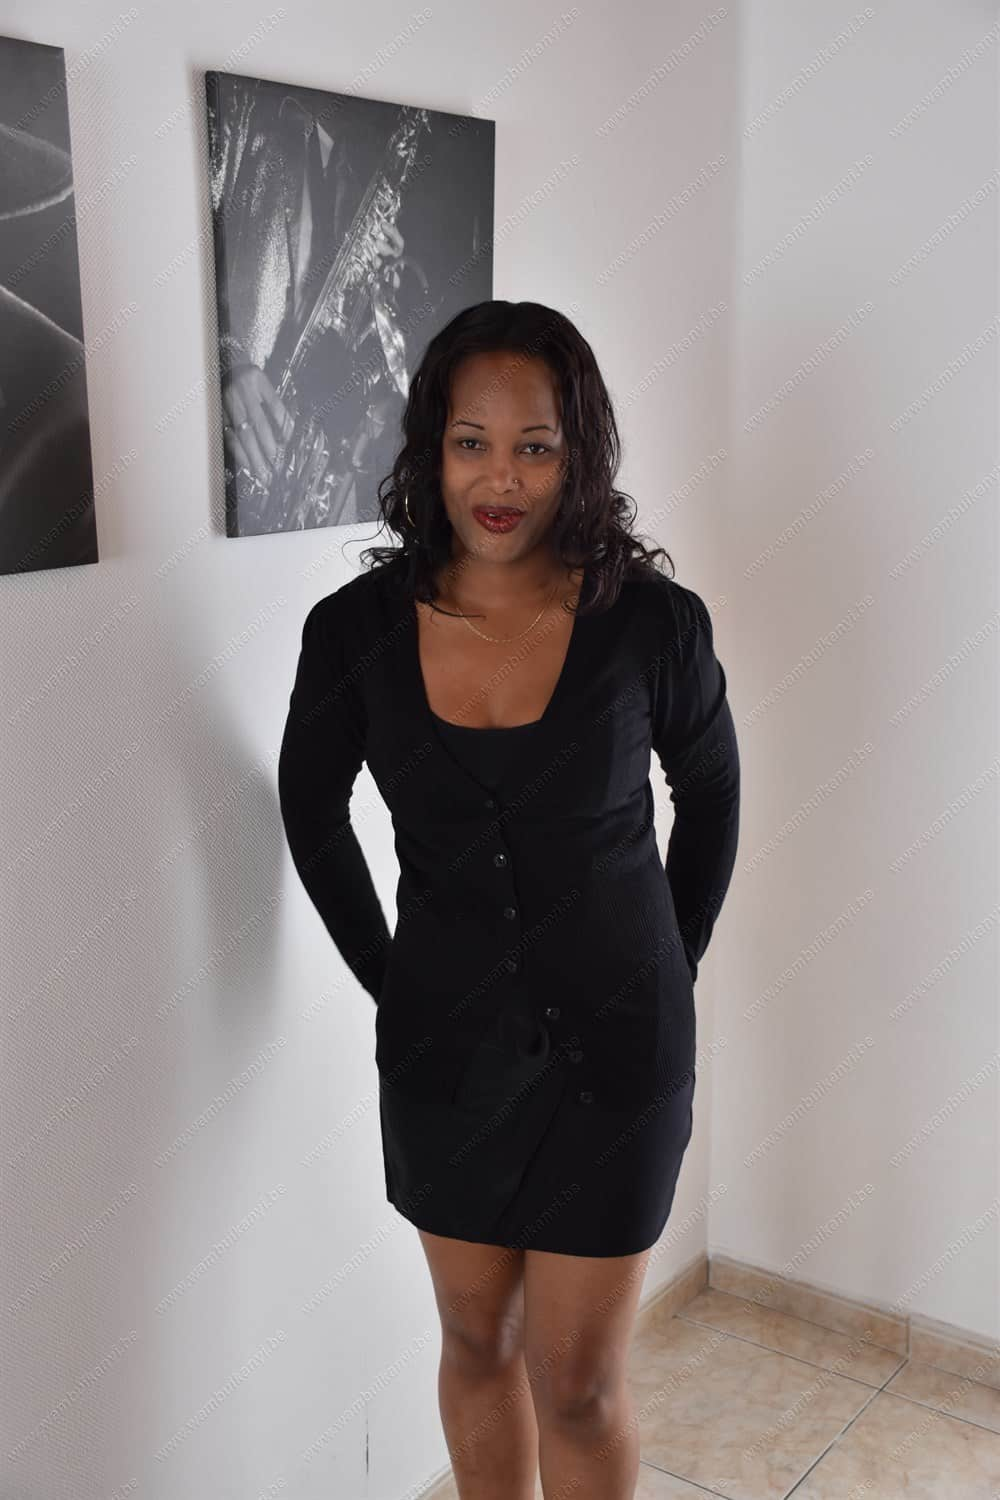 The little black dress with a cardigan